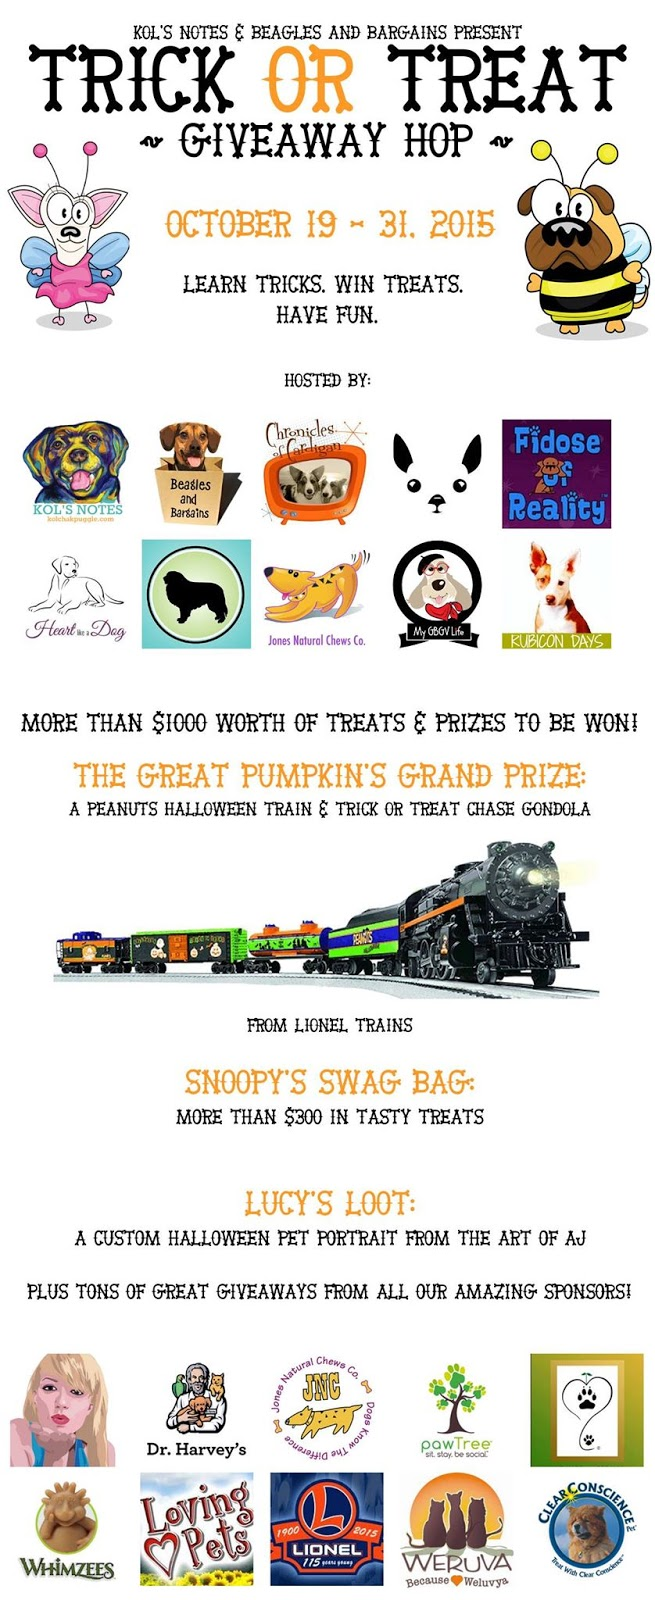 Trick or Treat Giveaway Hop dog cartoon graphic in poster size, including logos of all blogs and brands participating